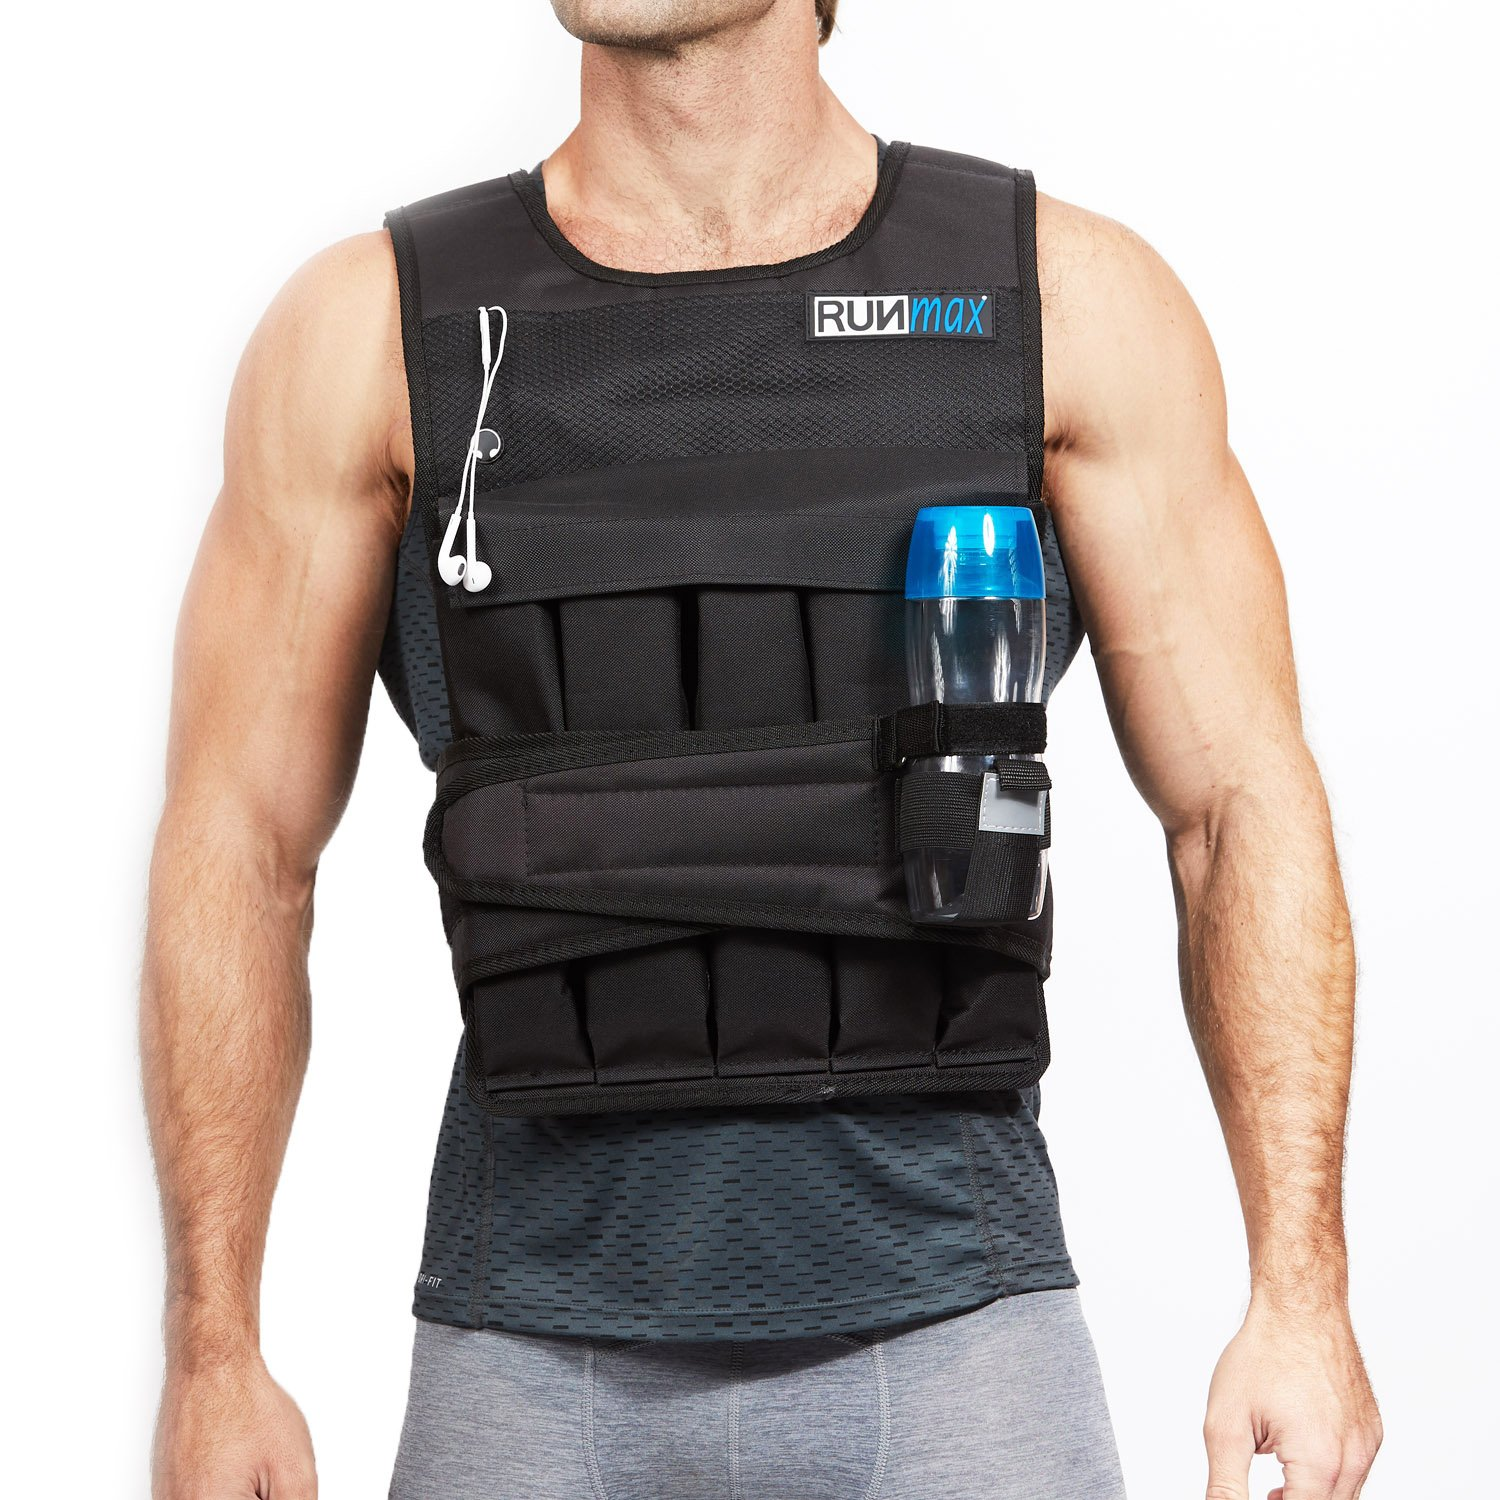 RUNFast Pro Weighted Vest 12lbs-60lbs (with Shoulder Pads, 60 LB) by RUNmax (Image #2)